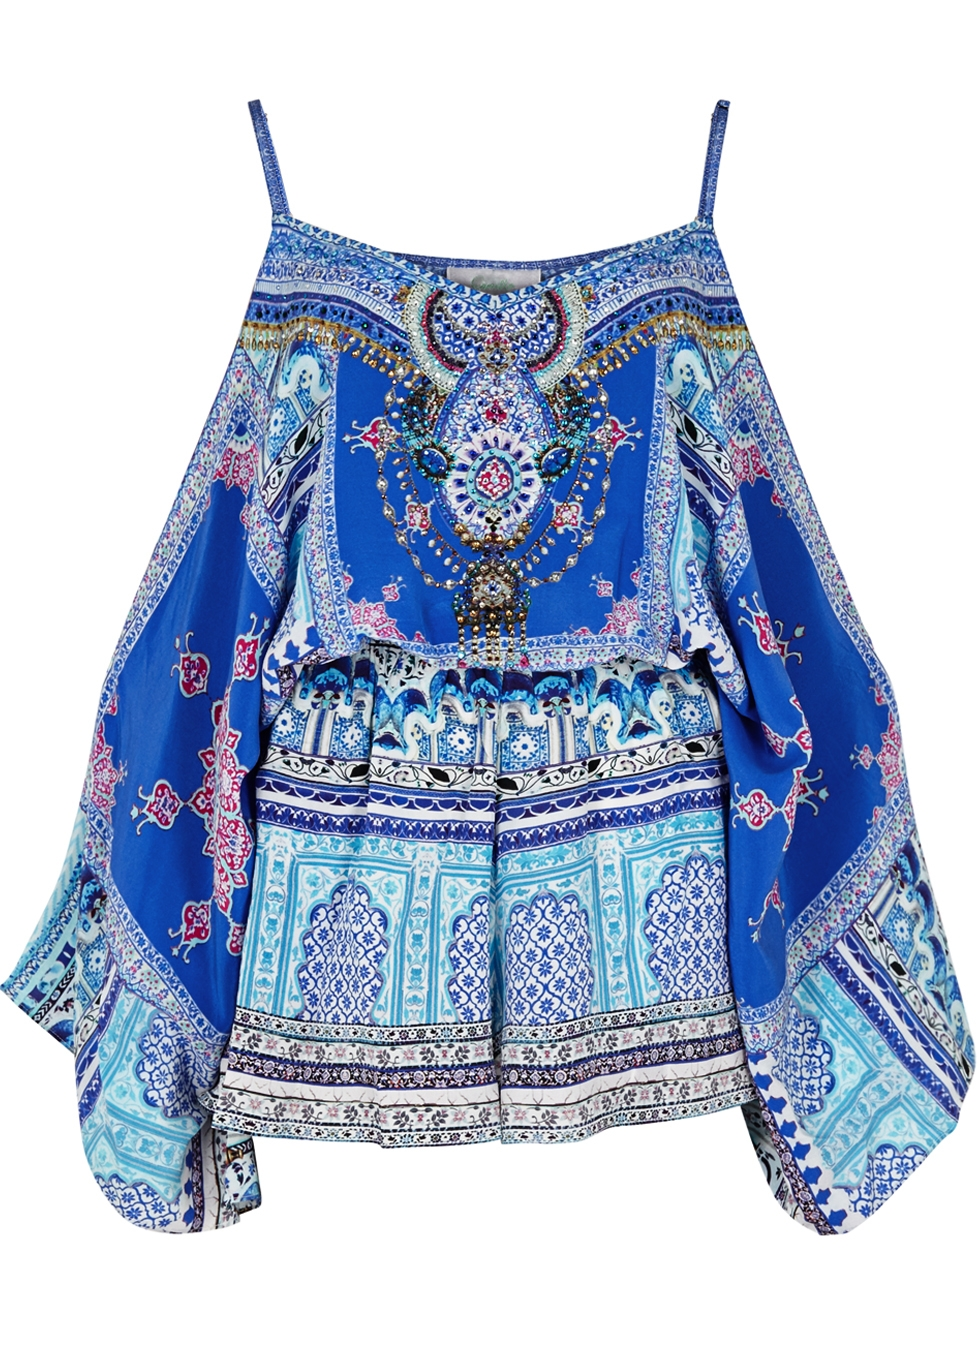 CAMILLA STRENGTH IN RAYS PRINTED SILK PLAYSUIT